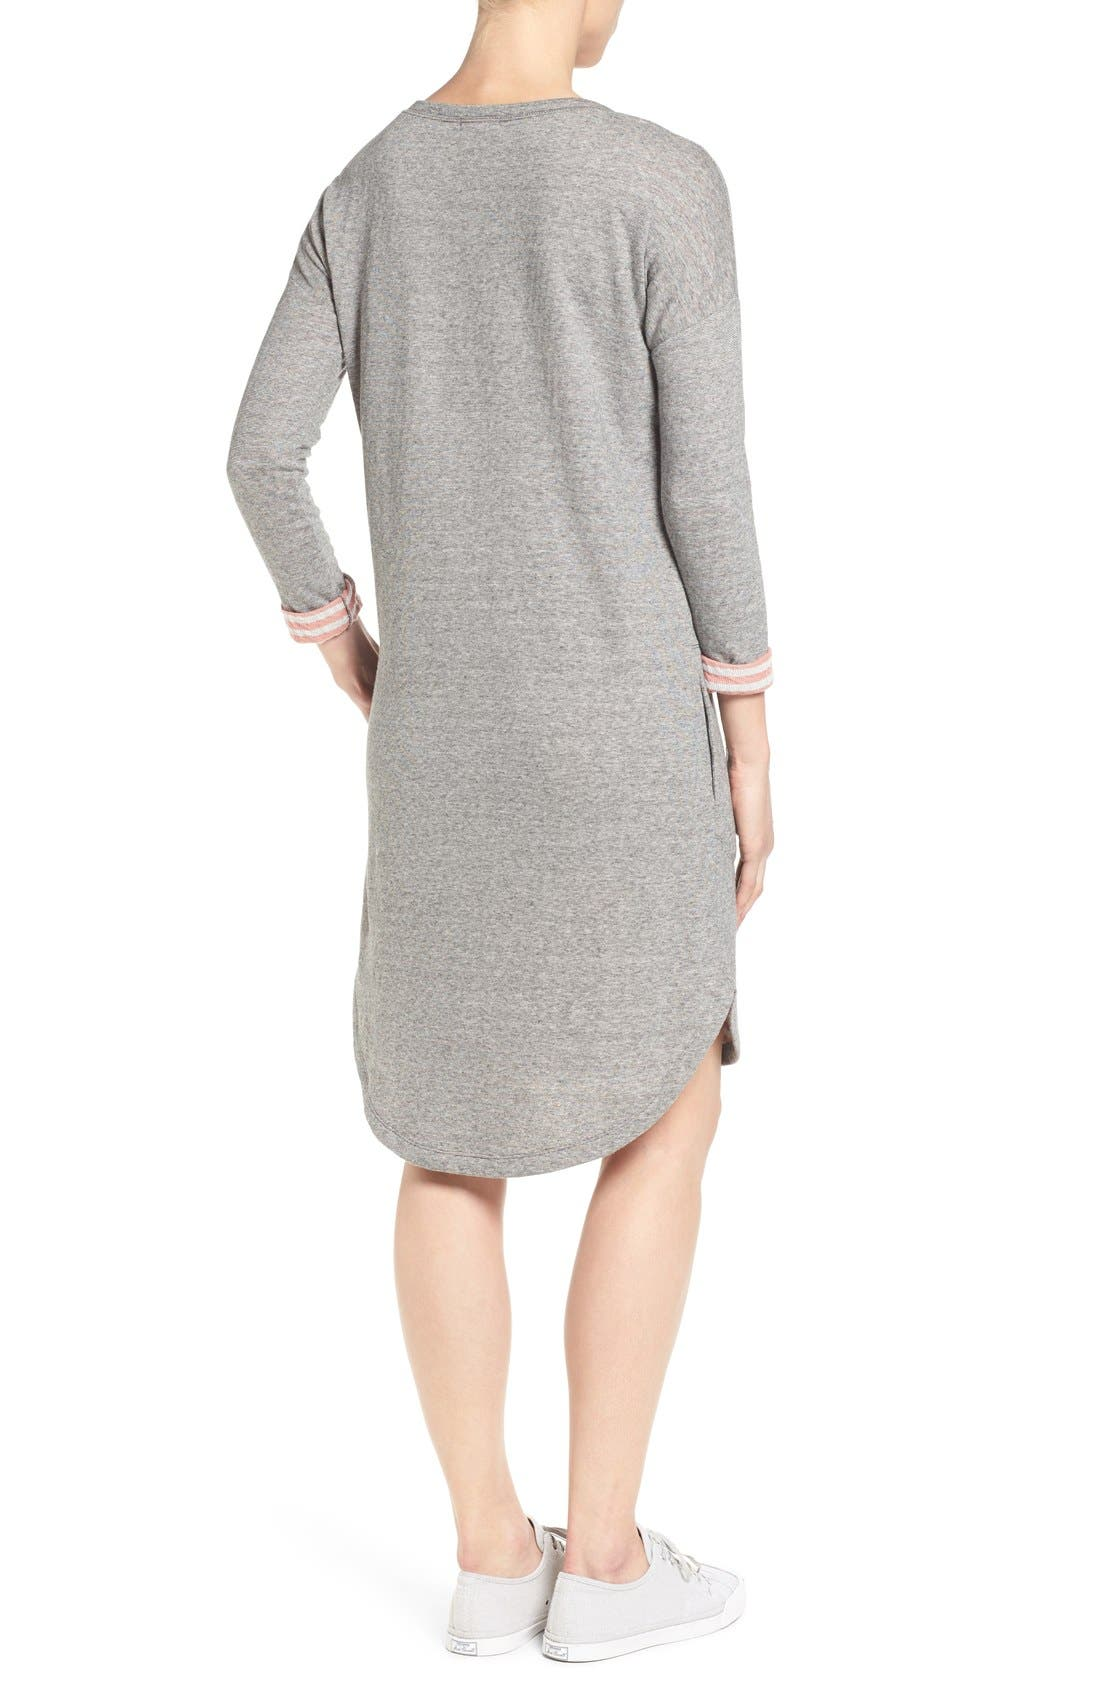 Contrast Cuff Double Knit Dress,                             Alternate thumbnail 2, color,                             Grey- Coral Pattern